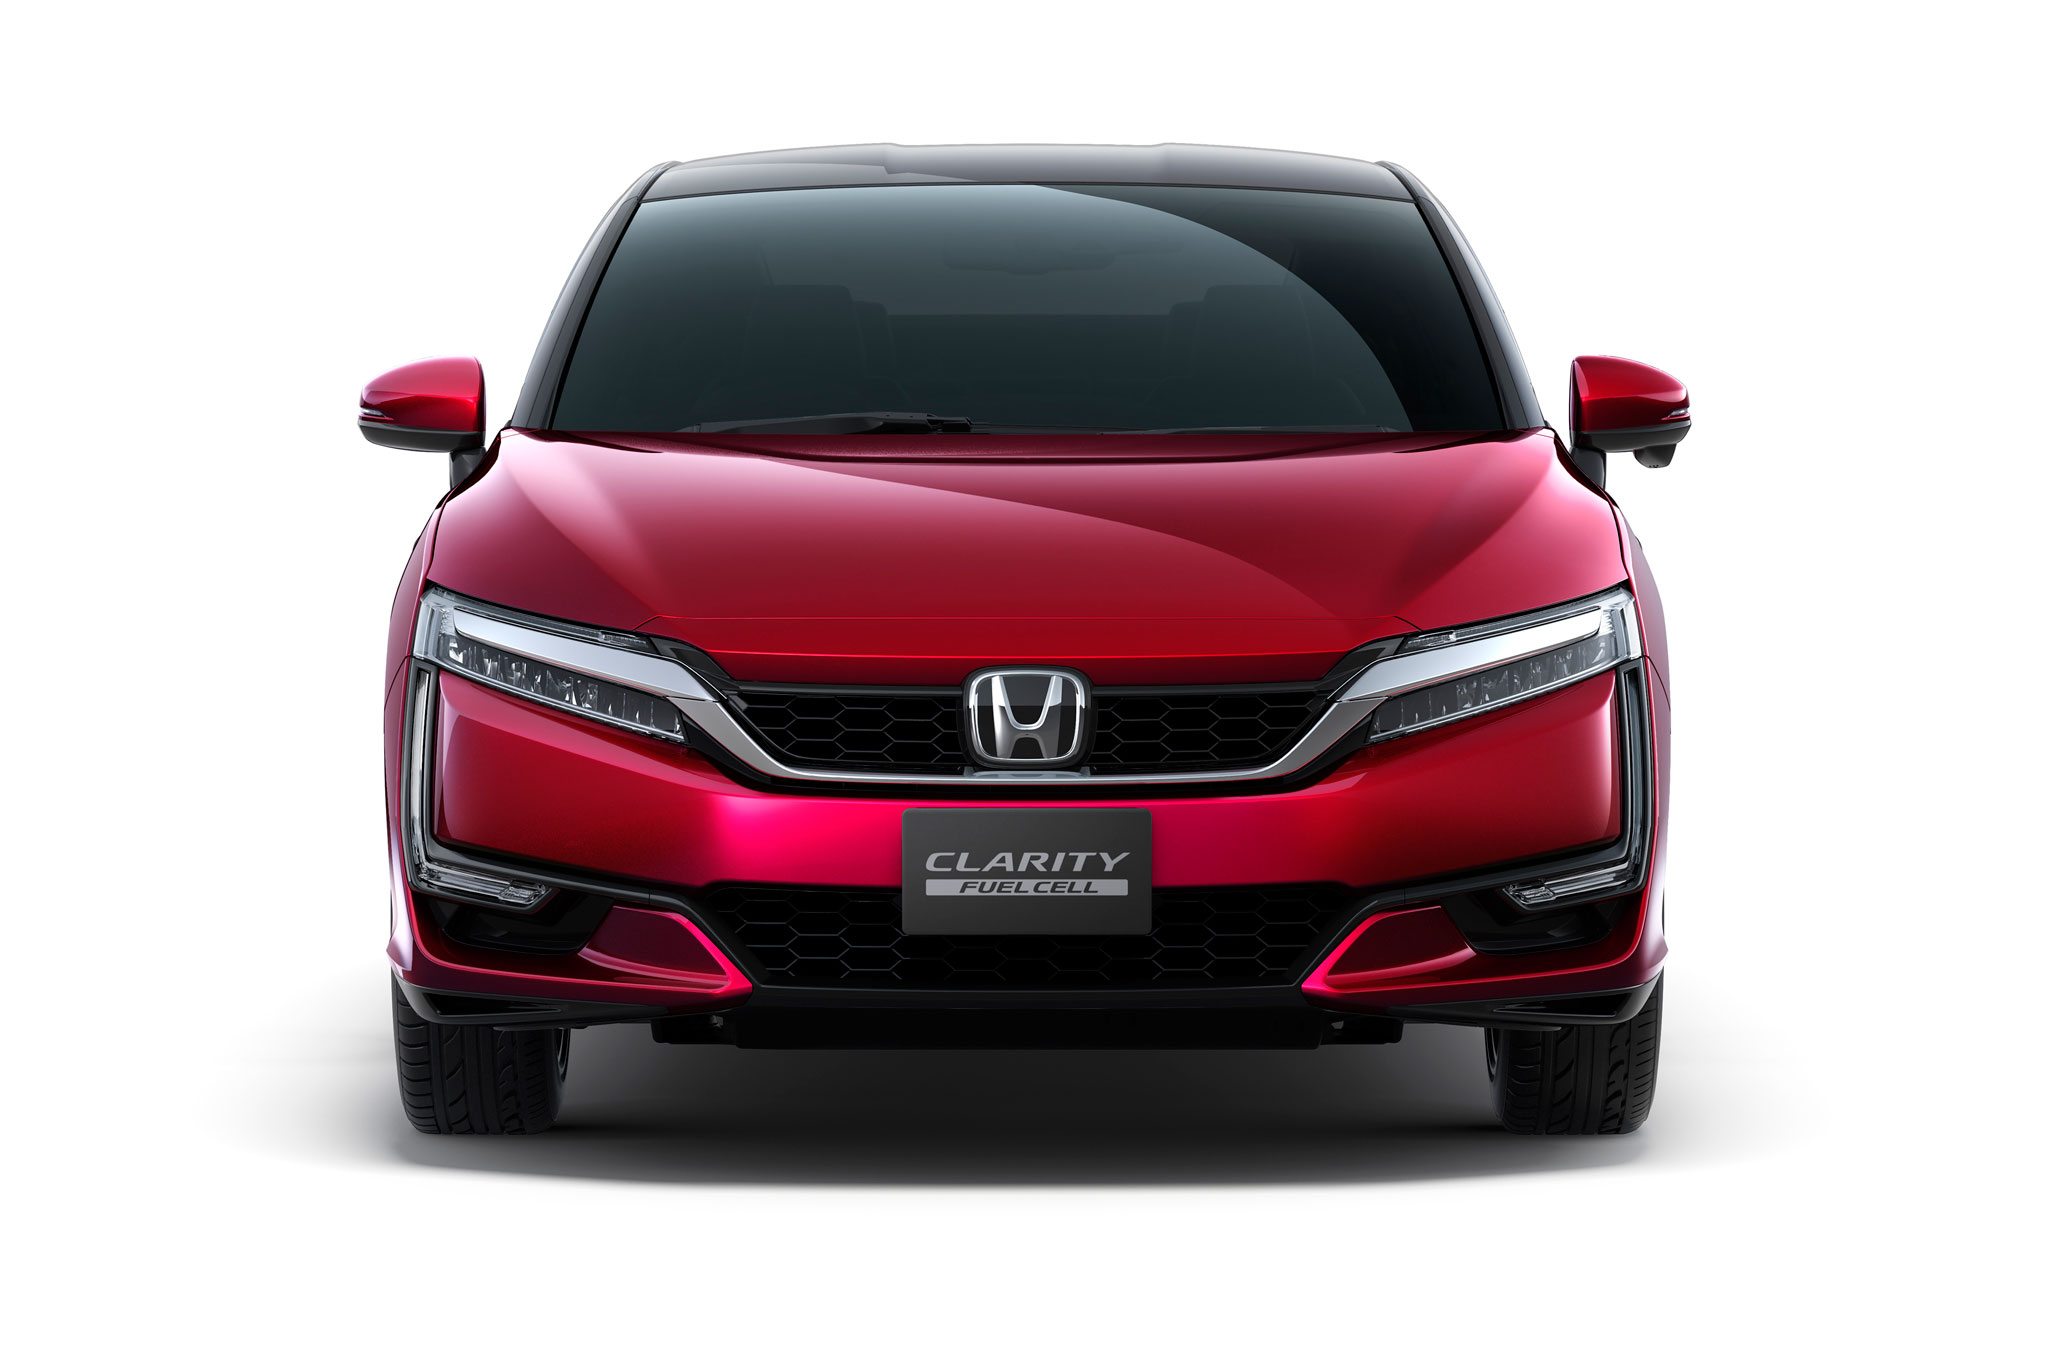 2018 honda fcx clarity price in canada